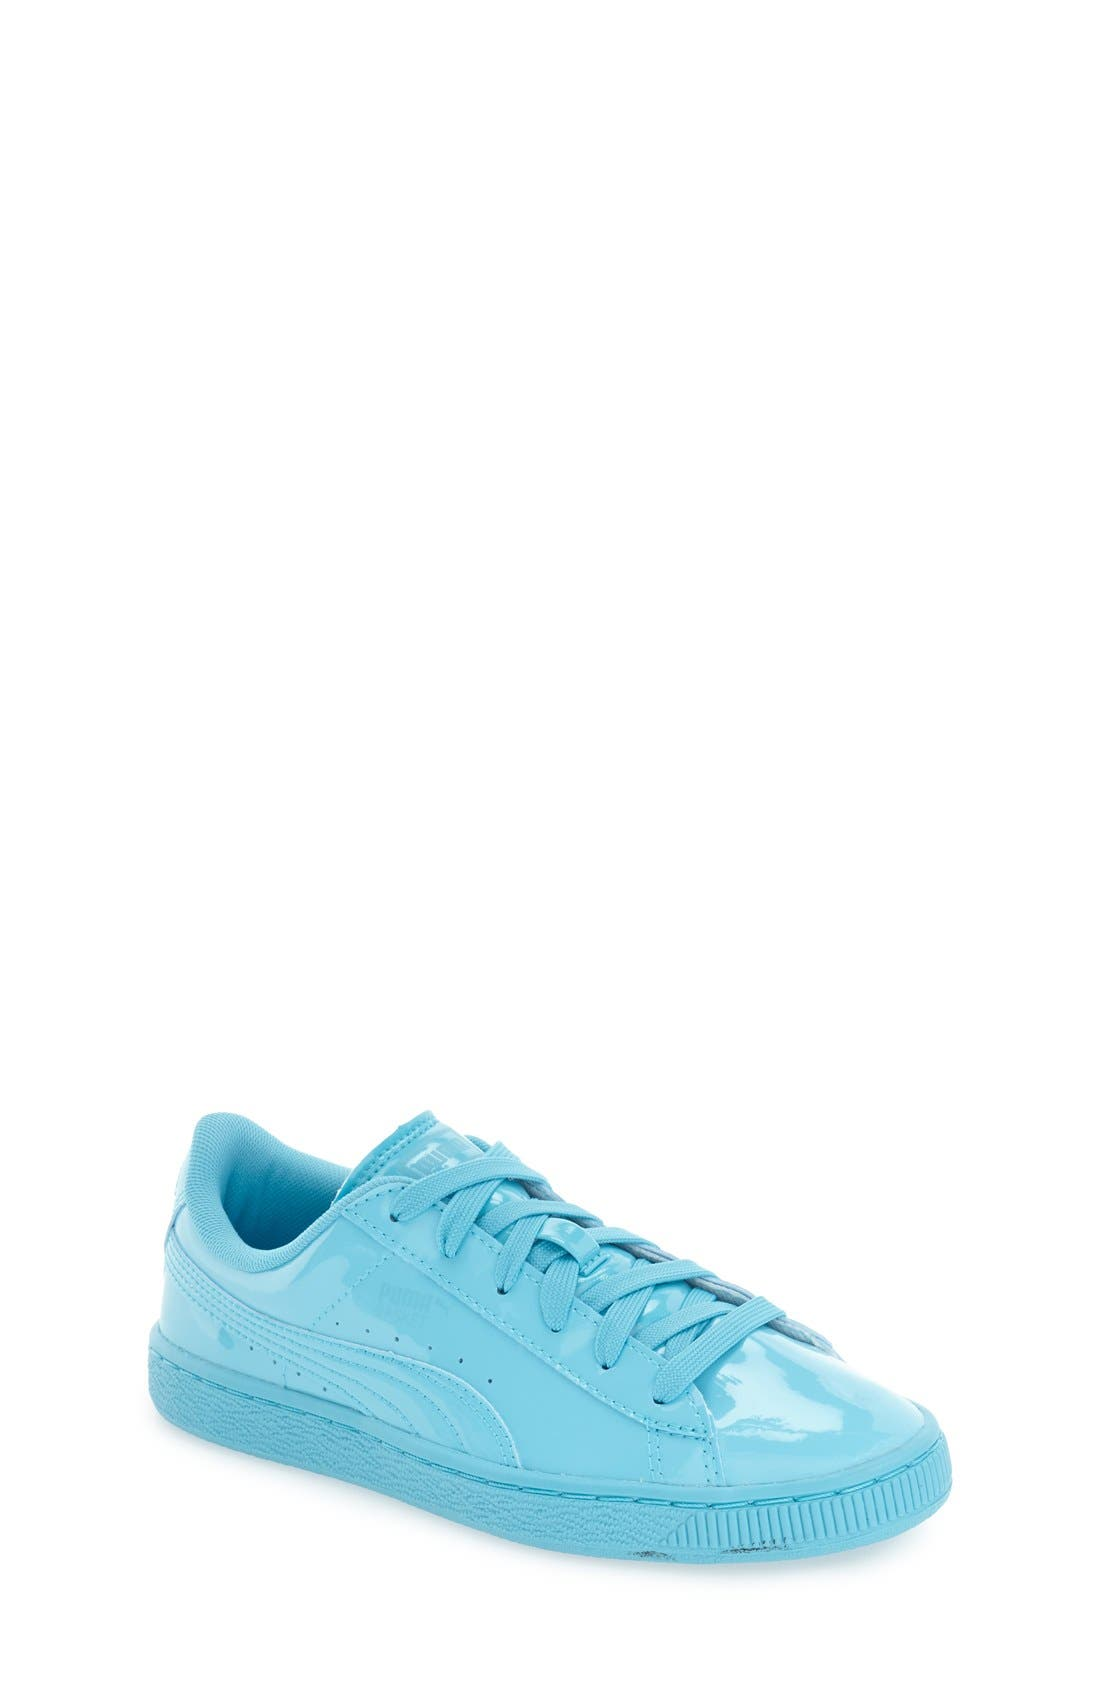 'Basket Classic' Sneaker,                         Main,                         color, Blue Atoll-Blue Atoll